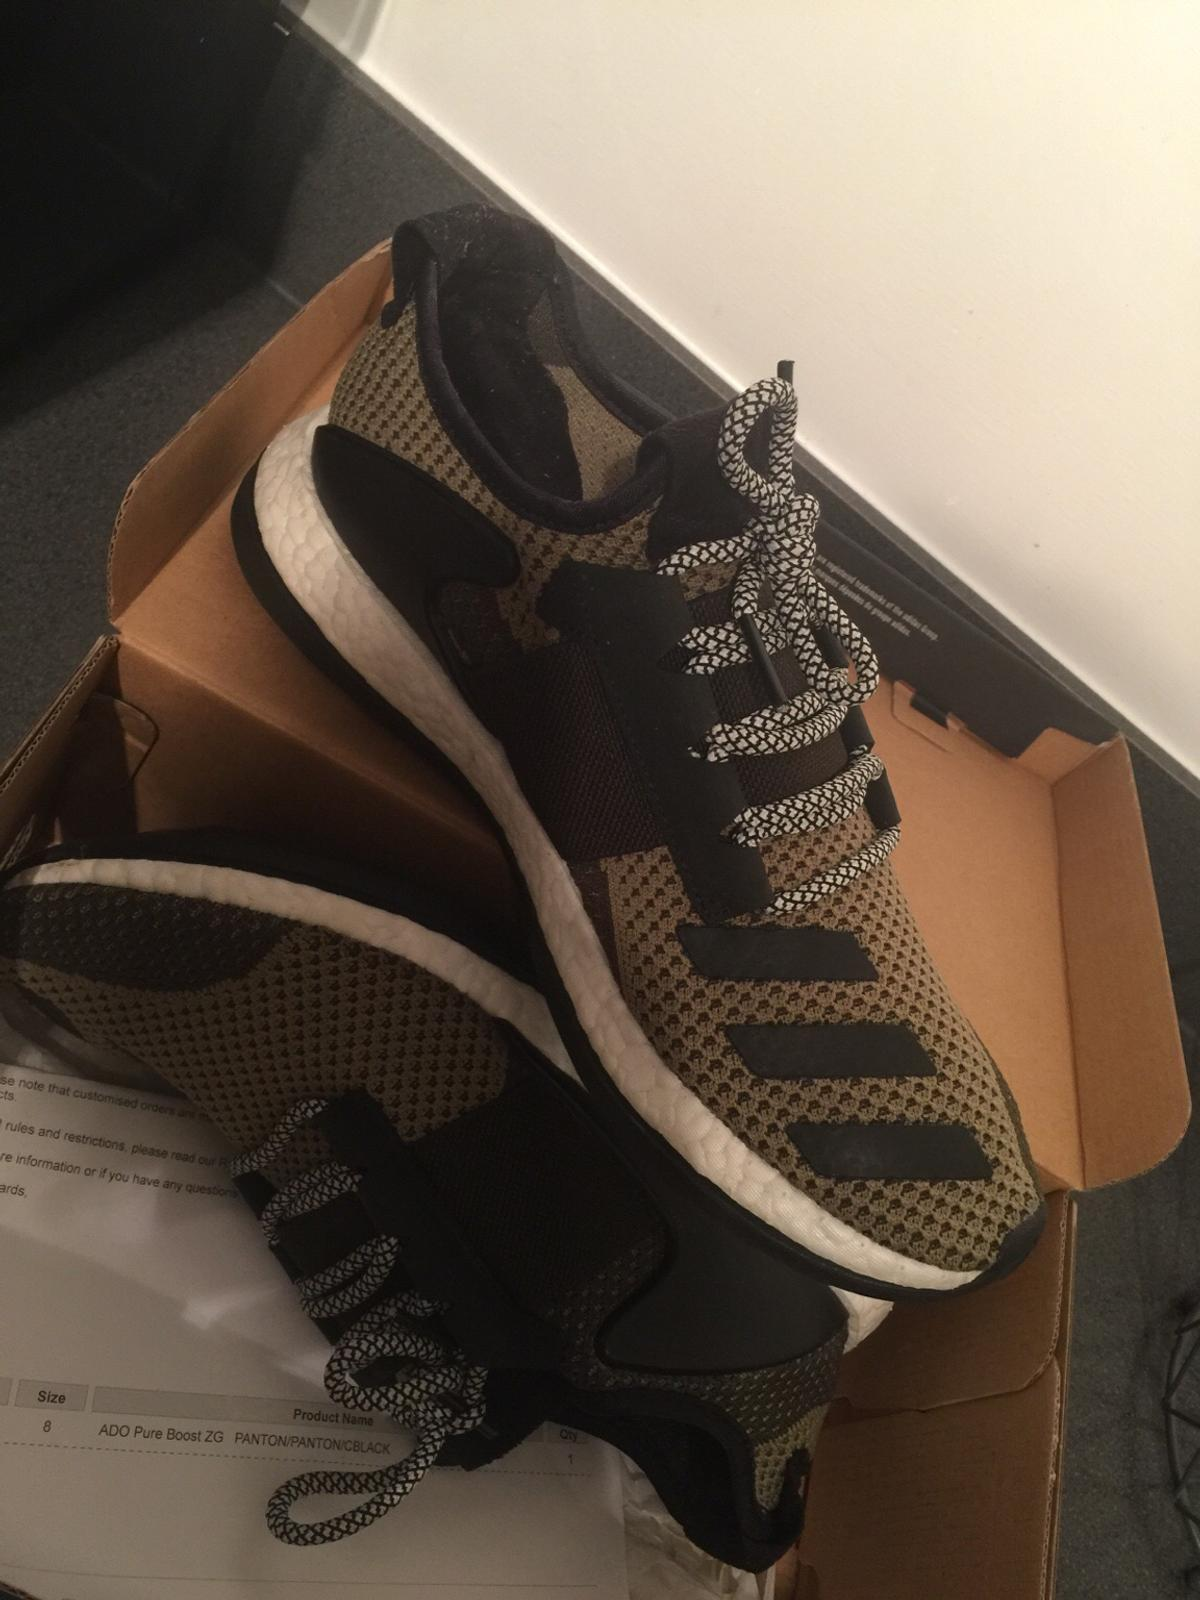 19d849547897f Adidas pure boost ZG Size 8 in L24 Liverpool for £45.00 for sale ...